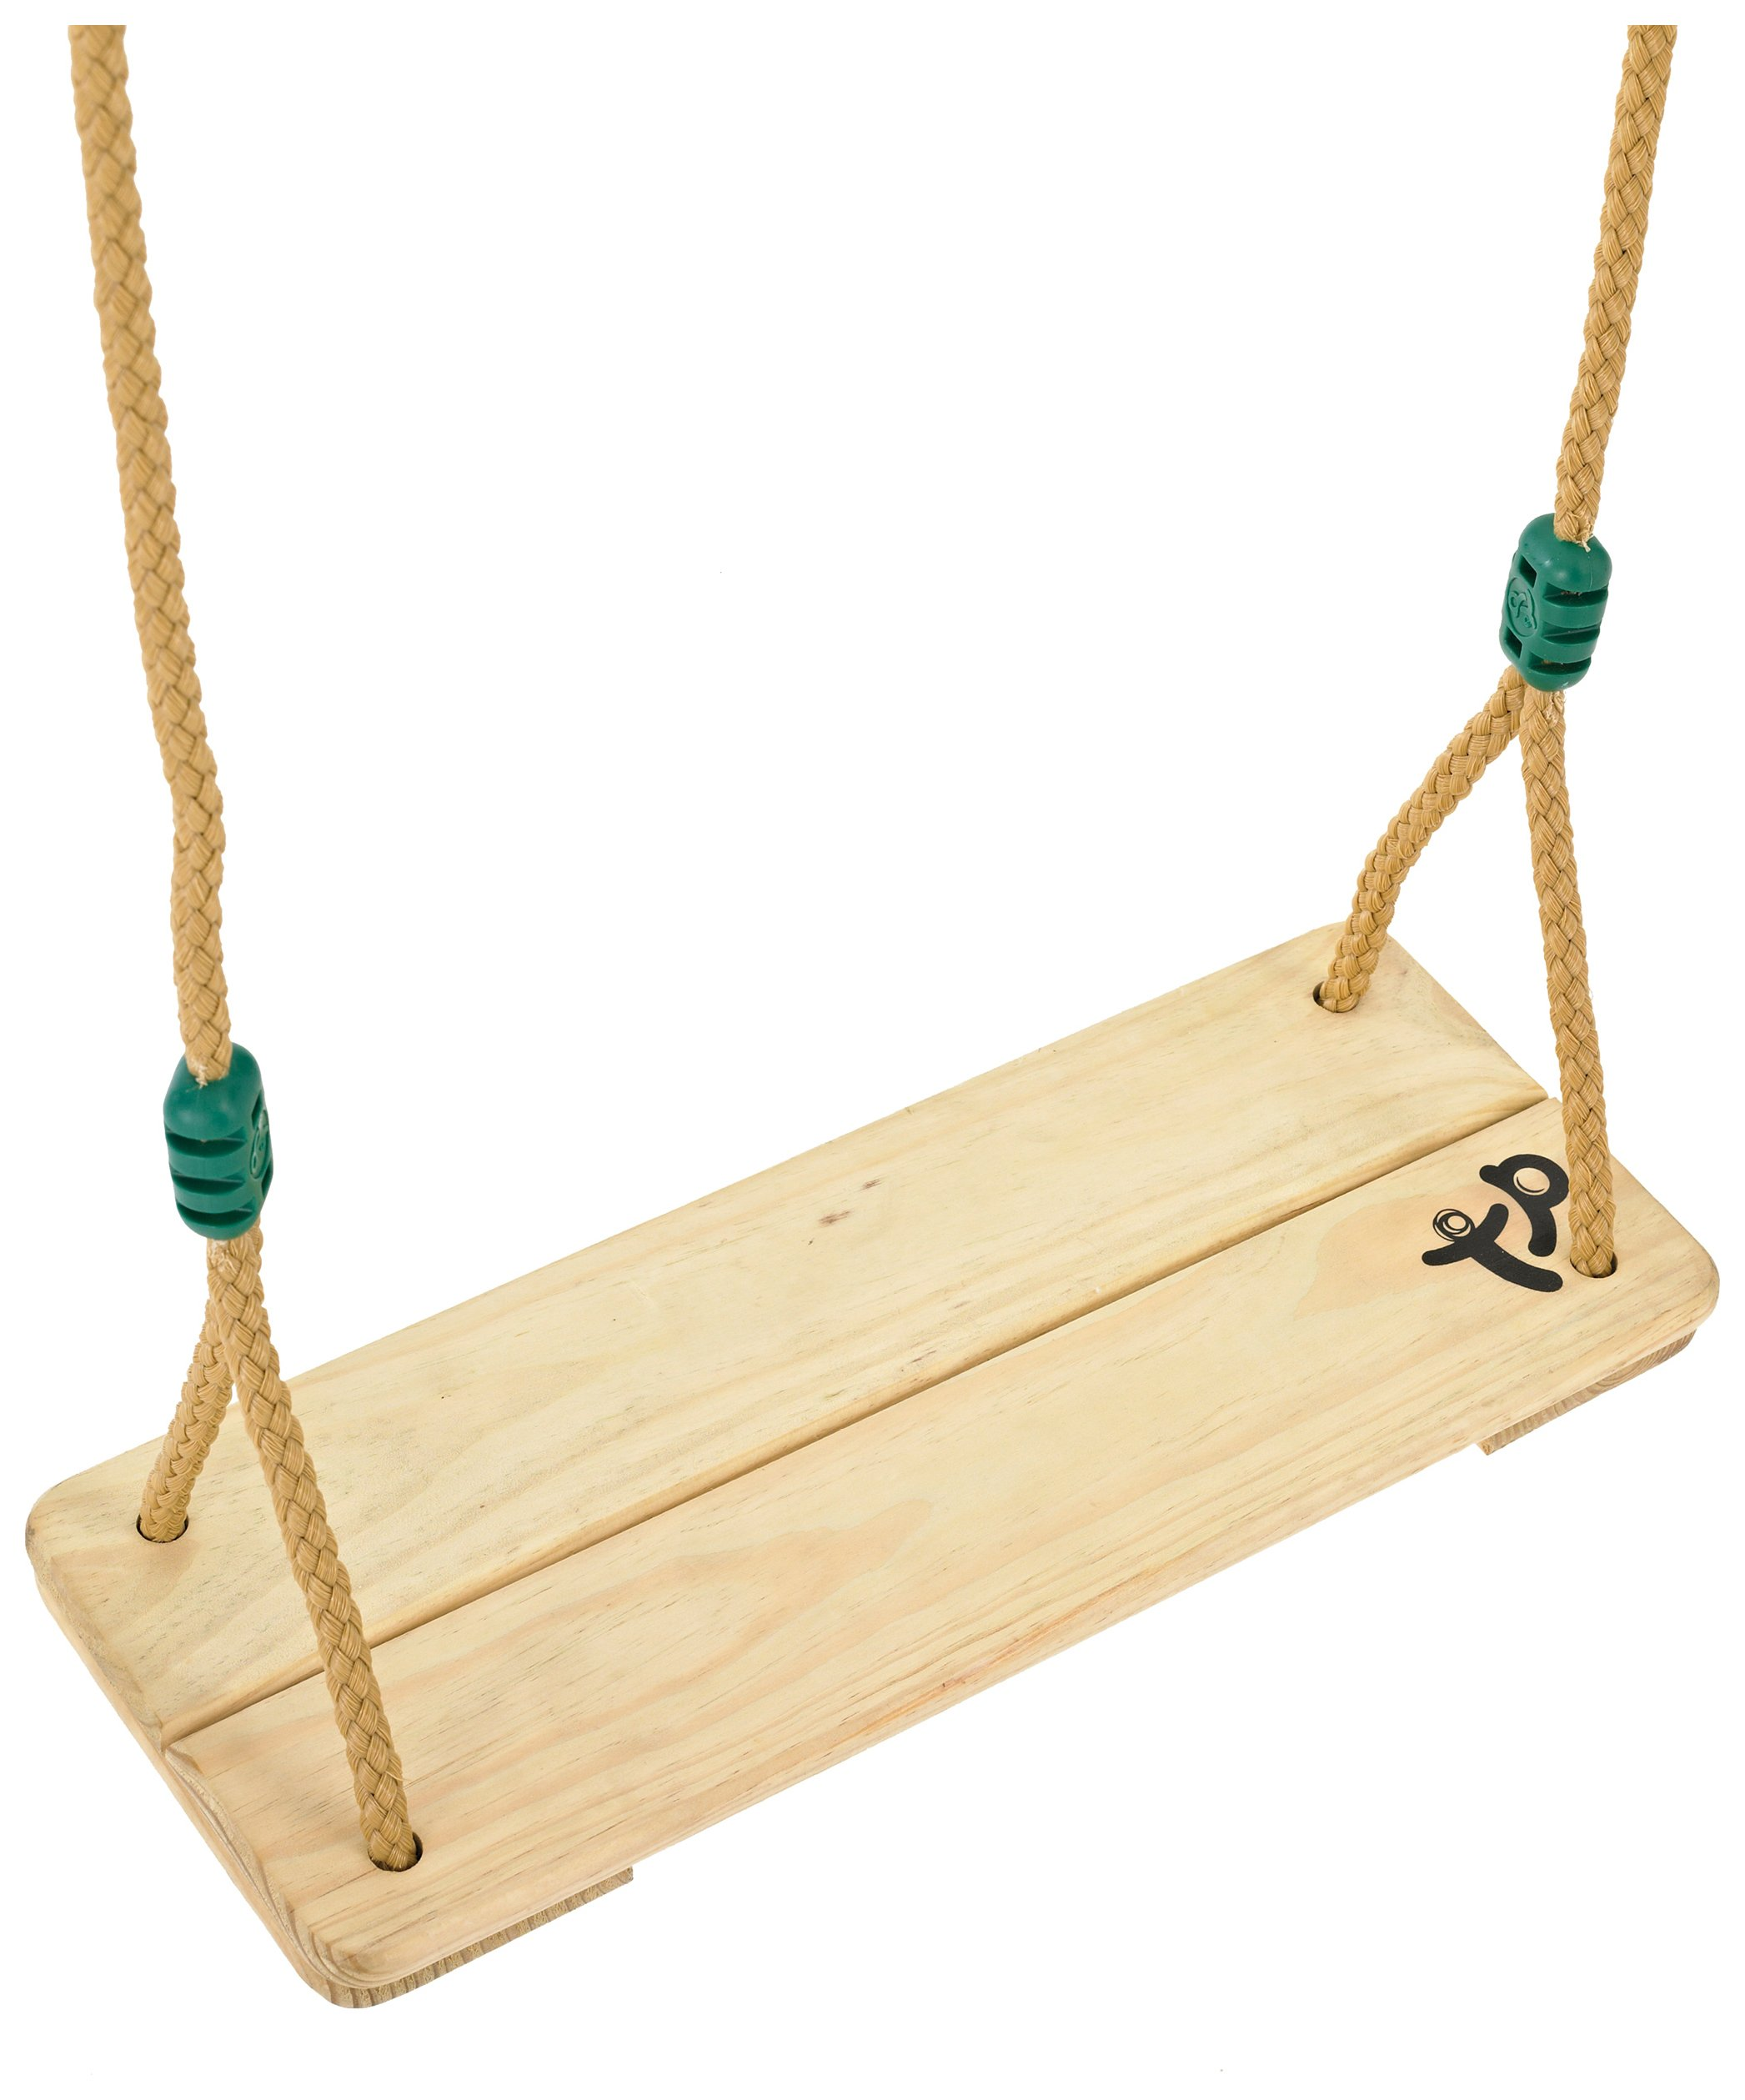 Sale On Wooden Swing Seat Tp Toys Now Available Our